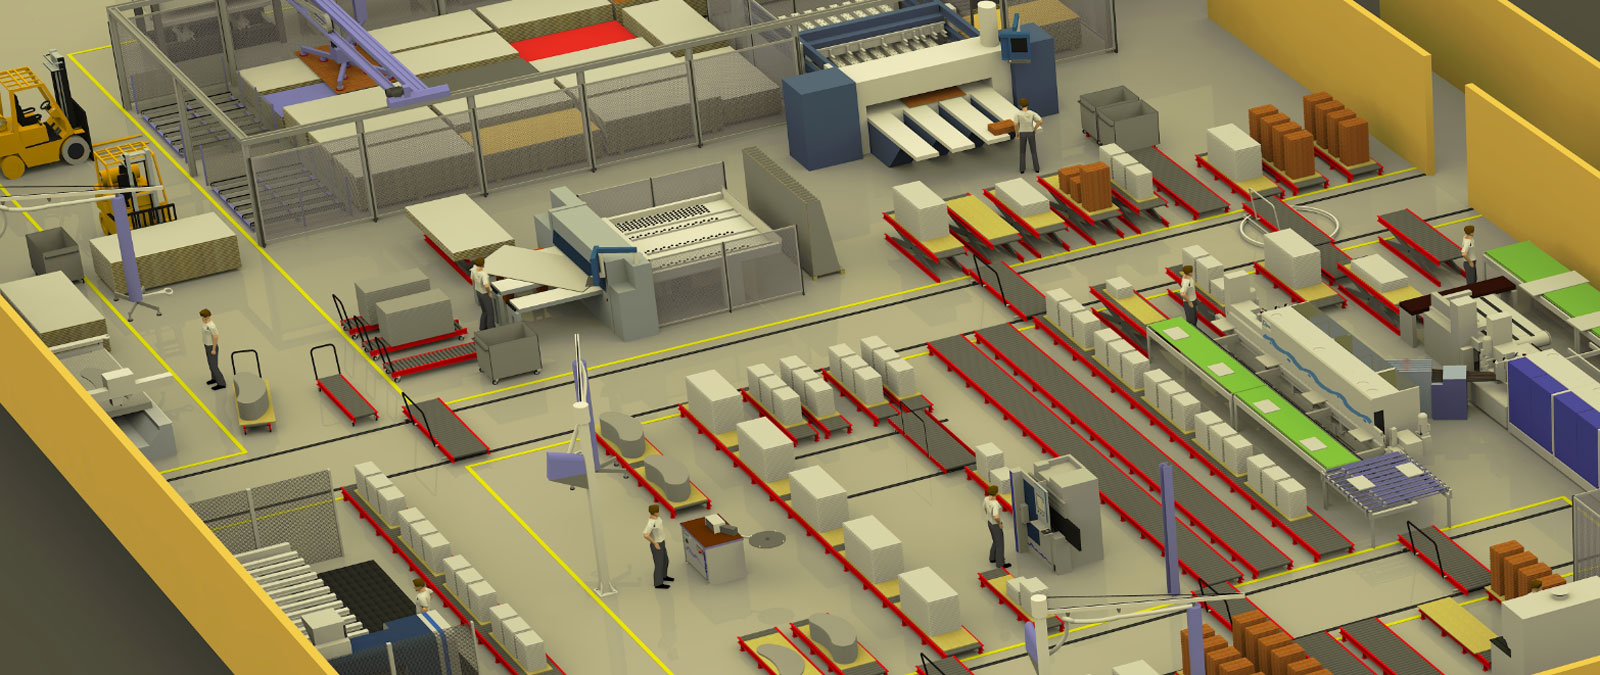 A part of the new factory layout of Nexis 3 in a 3D view